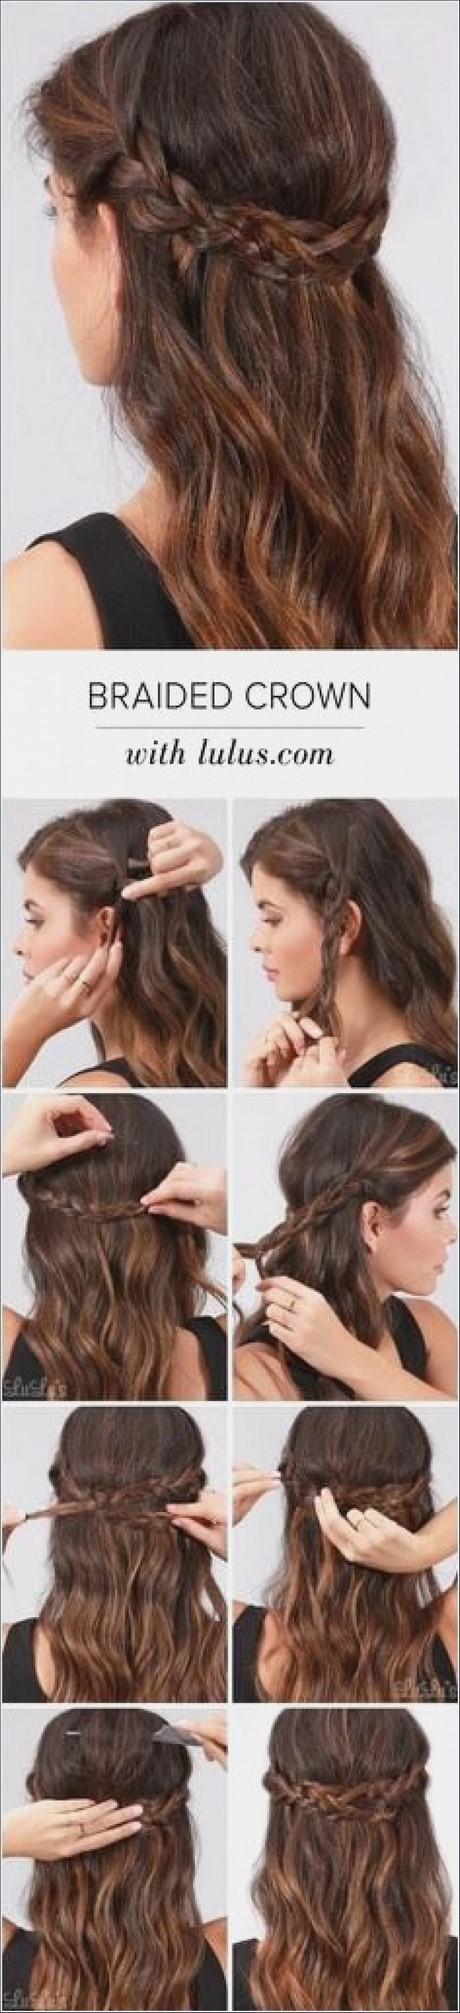 Pretty and simple hairstyles